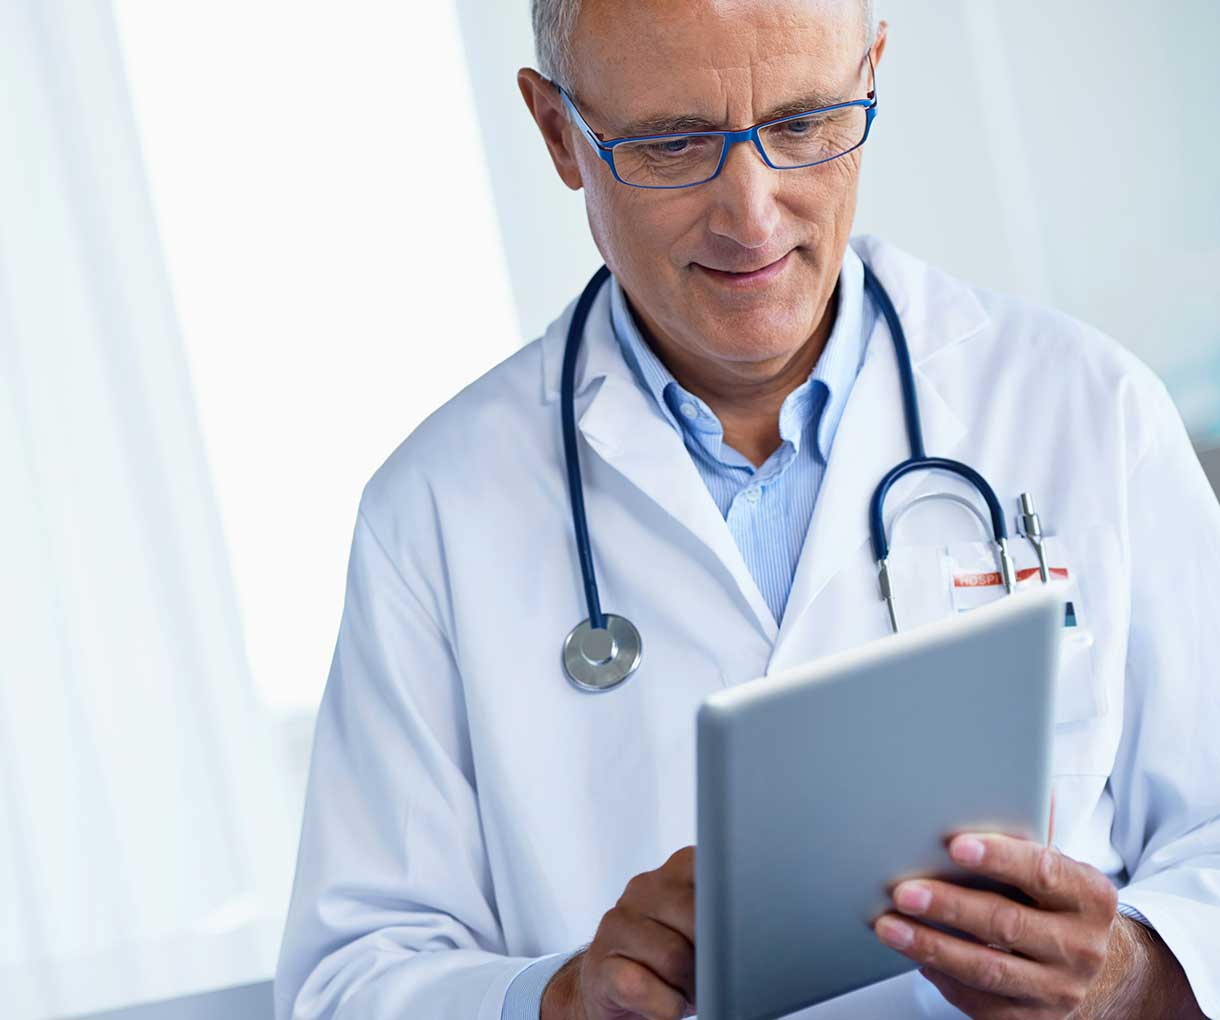 All relevant data at your fingertips to support optimal patient care